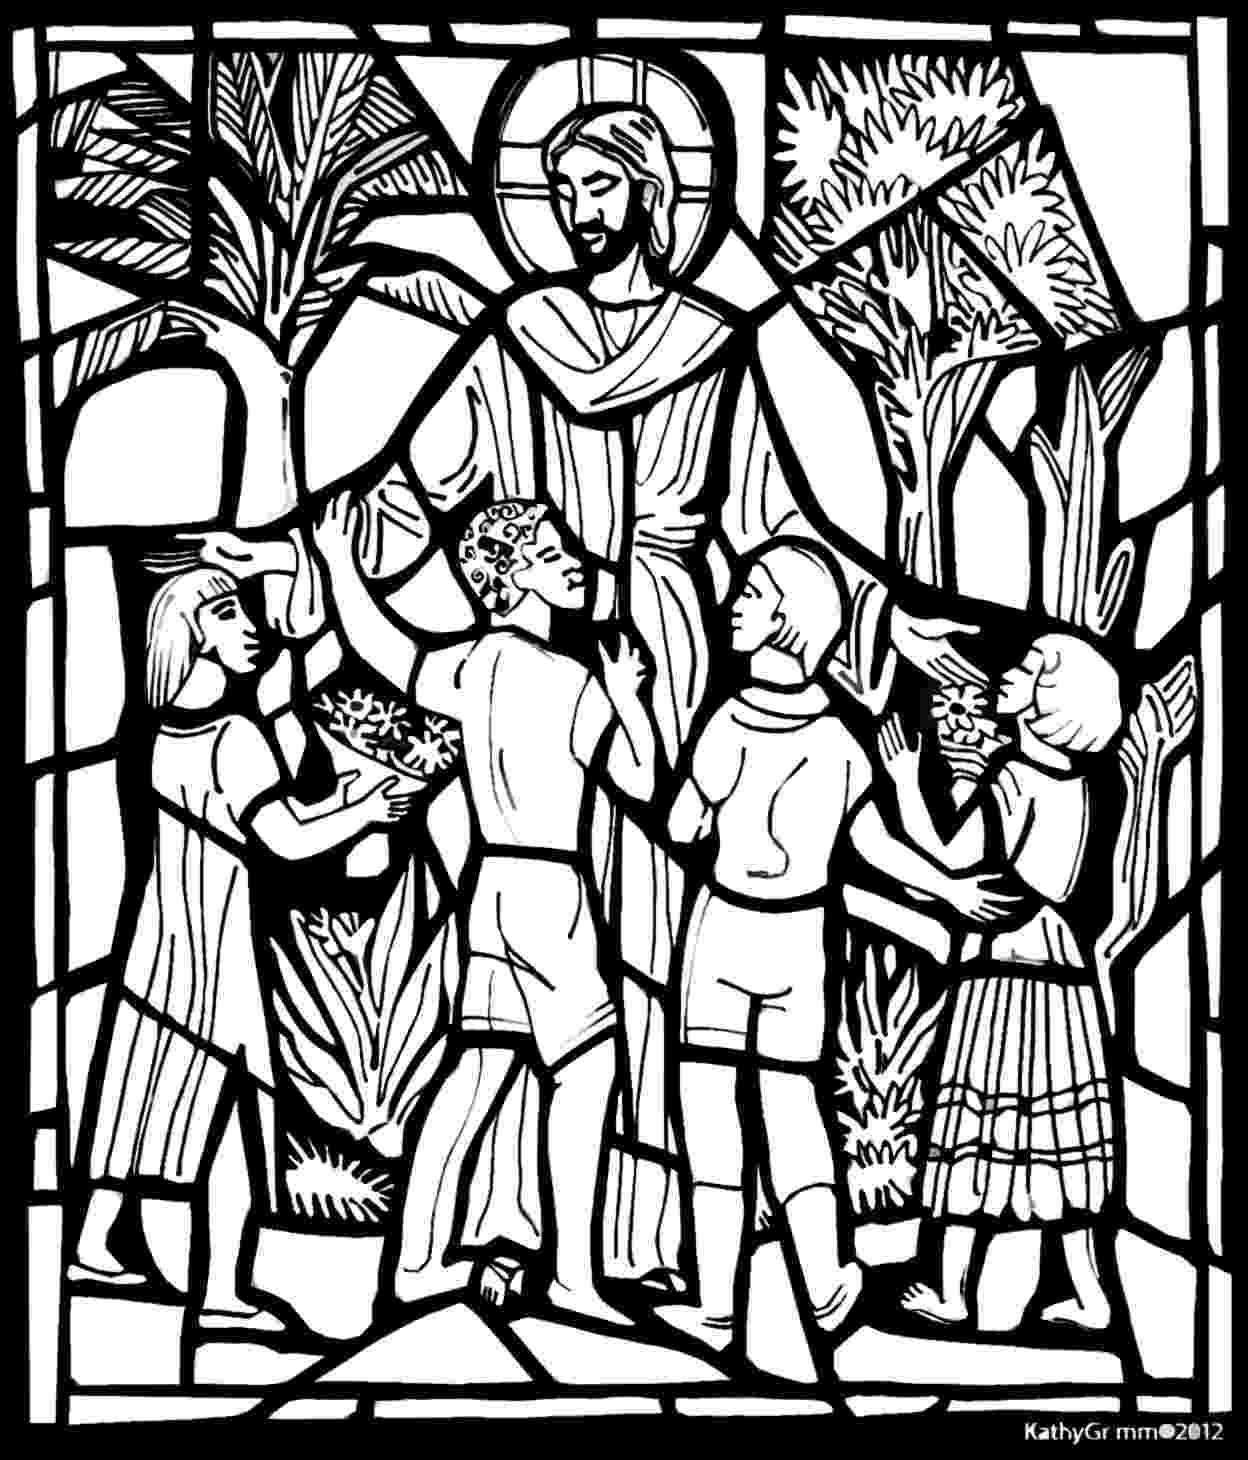 stained glass coloring pages printable stained glass coloring pages coloringpagesabccom pages printable glass coloring stained